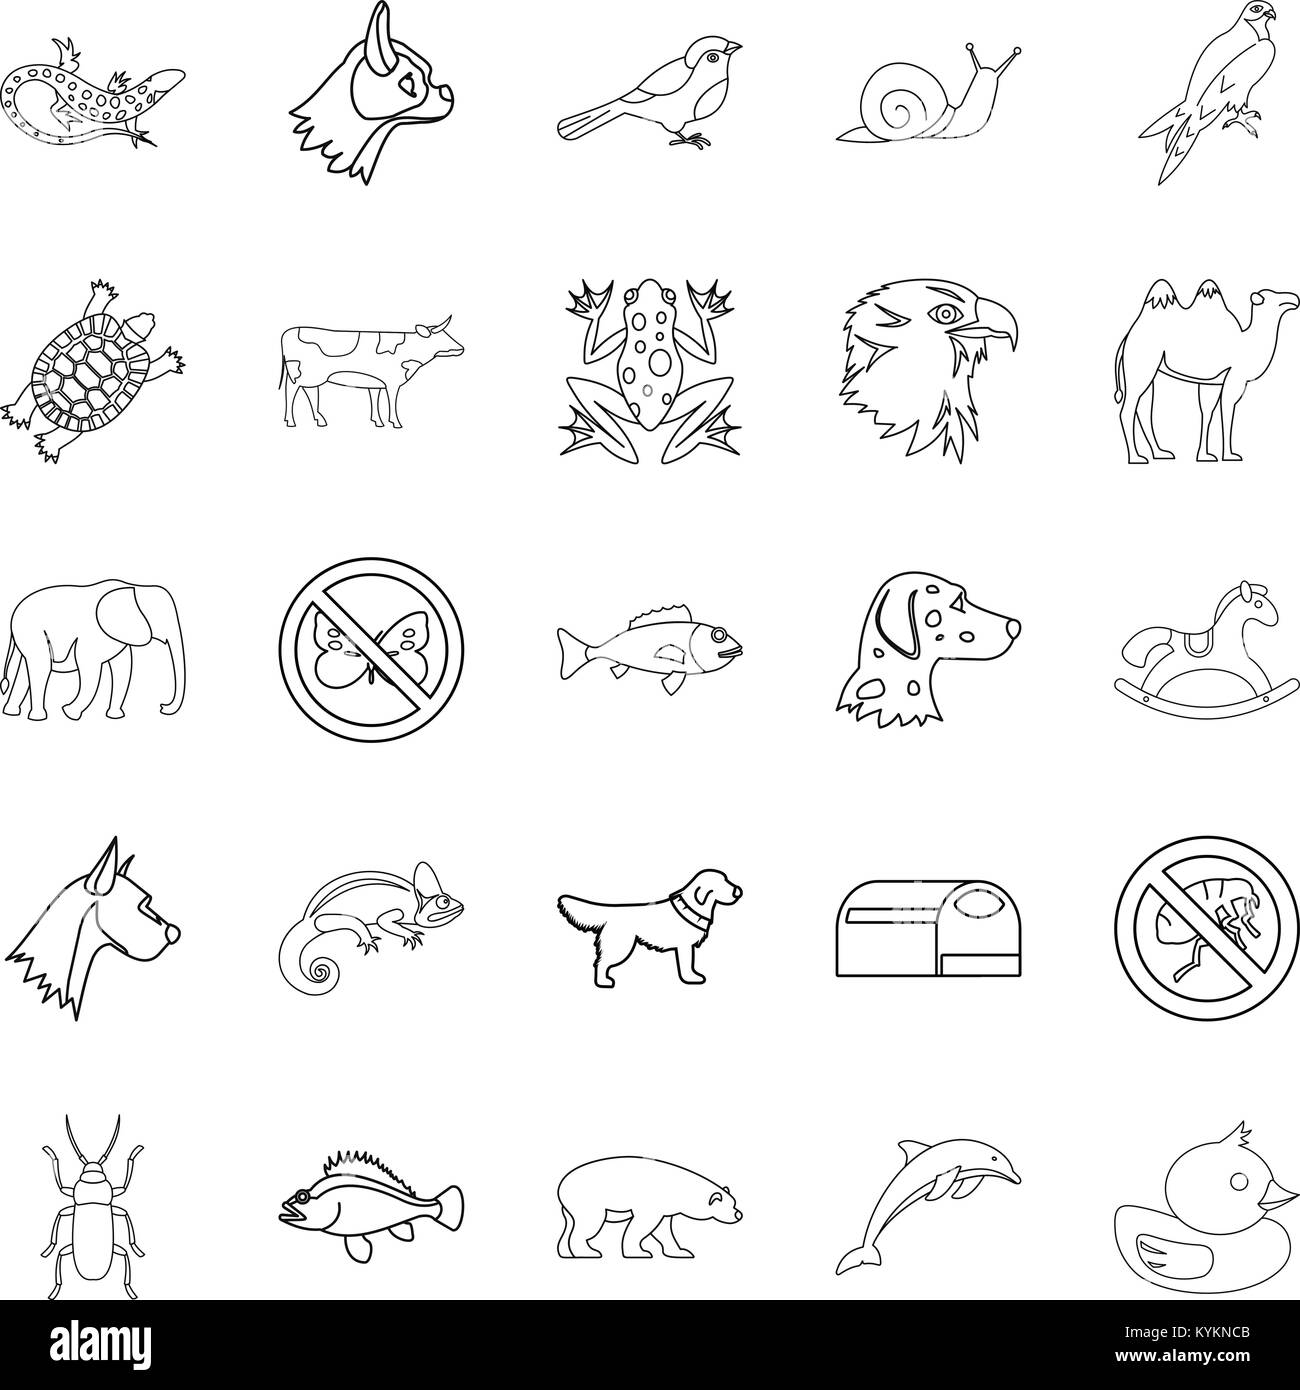 Darling icons set, outline style - Stock Image